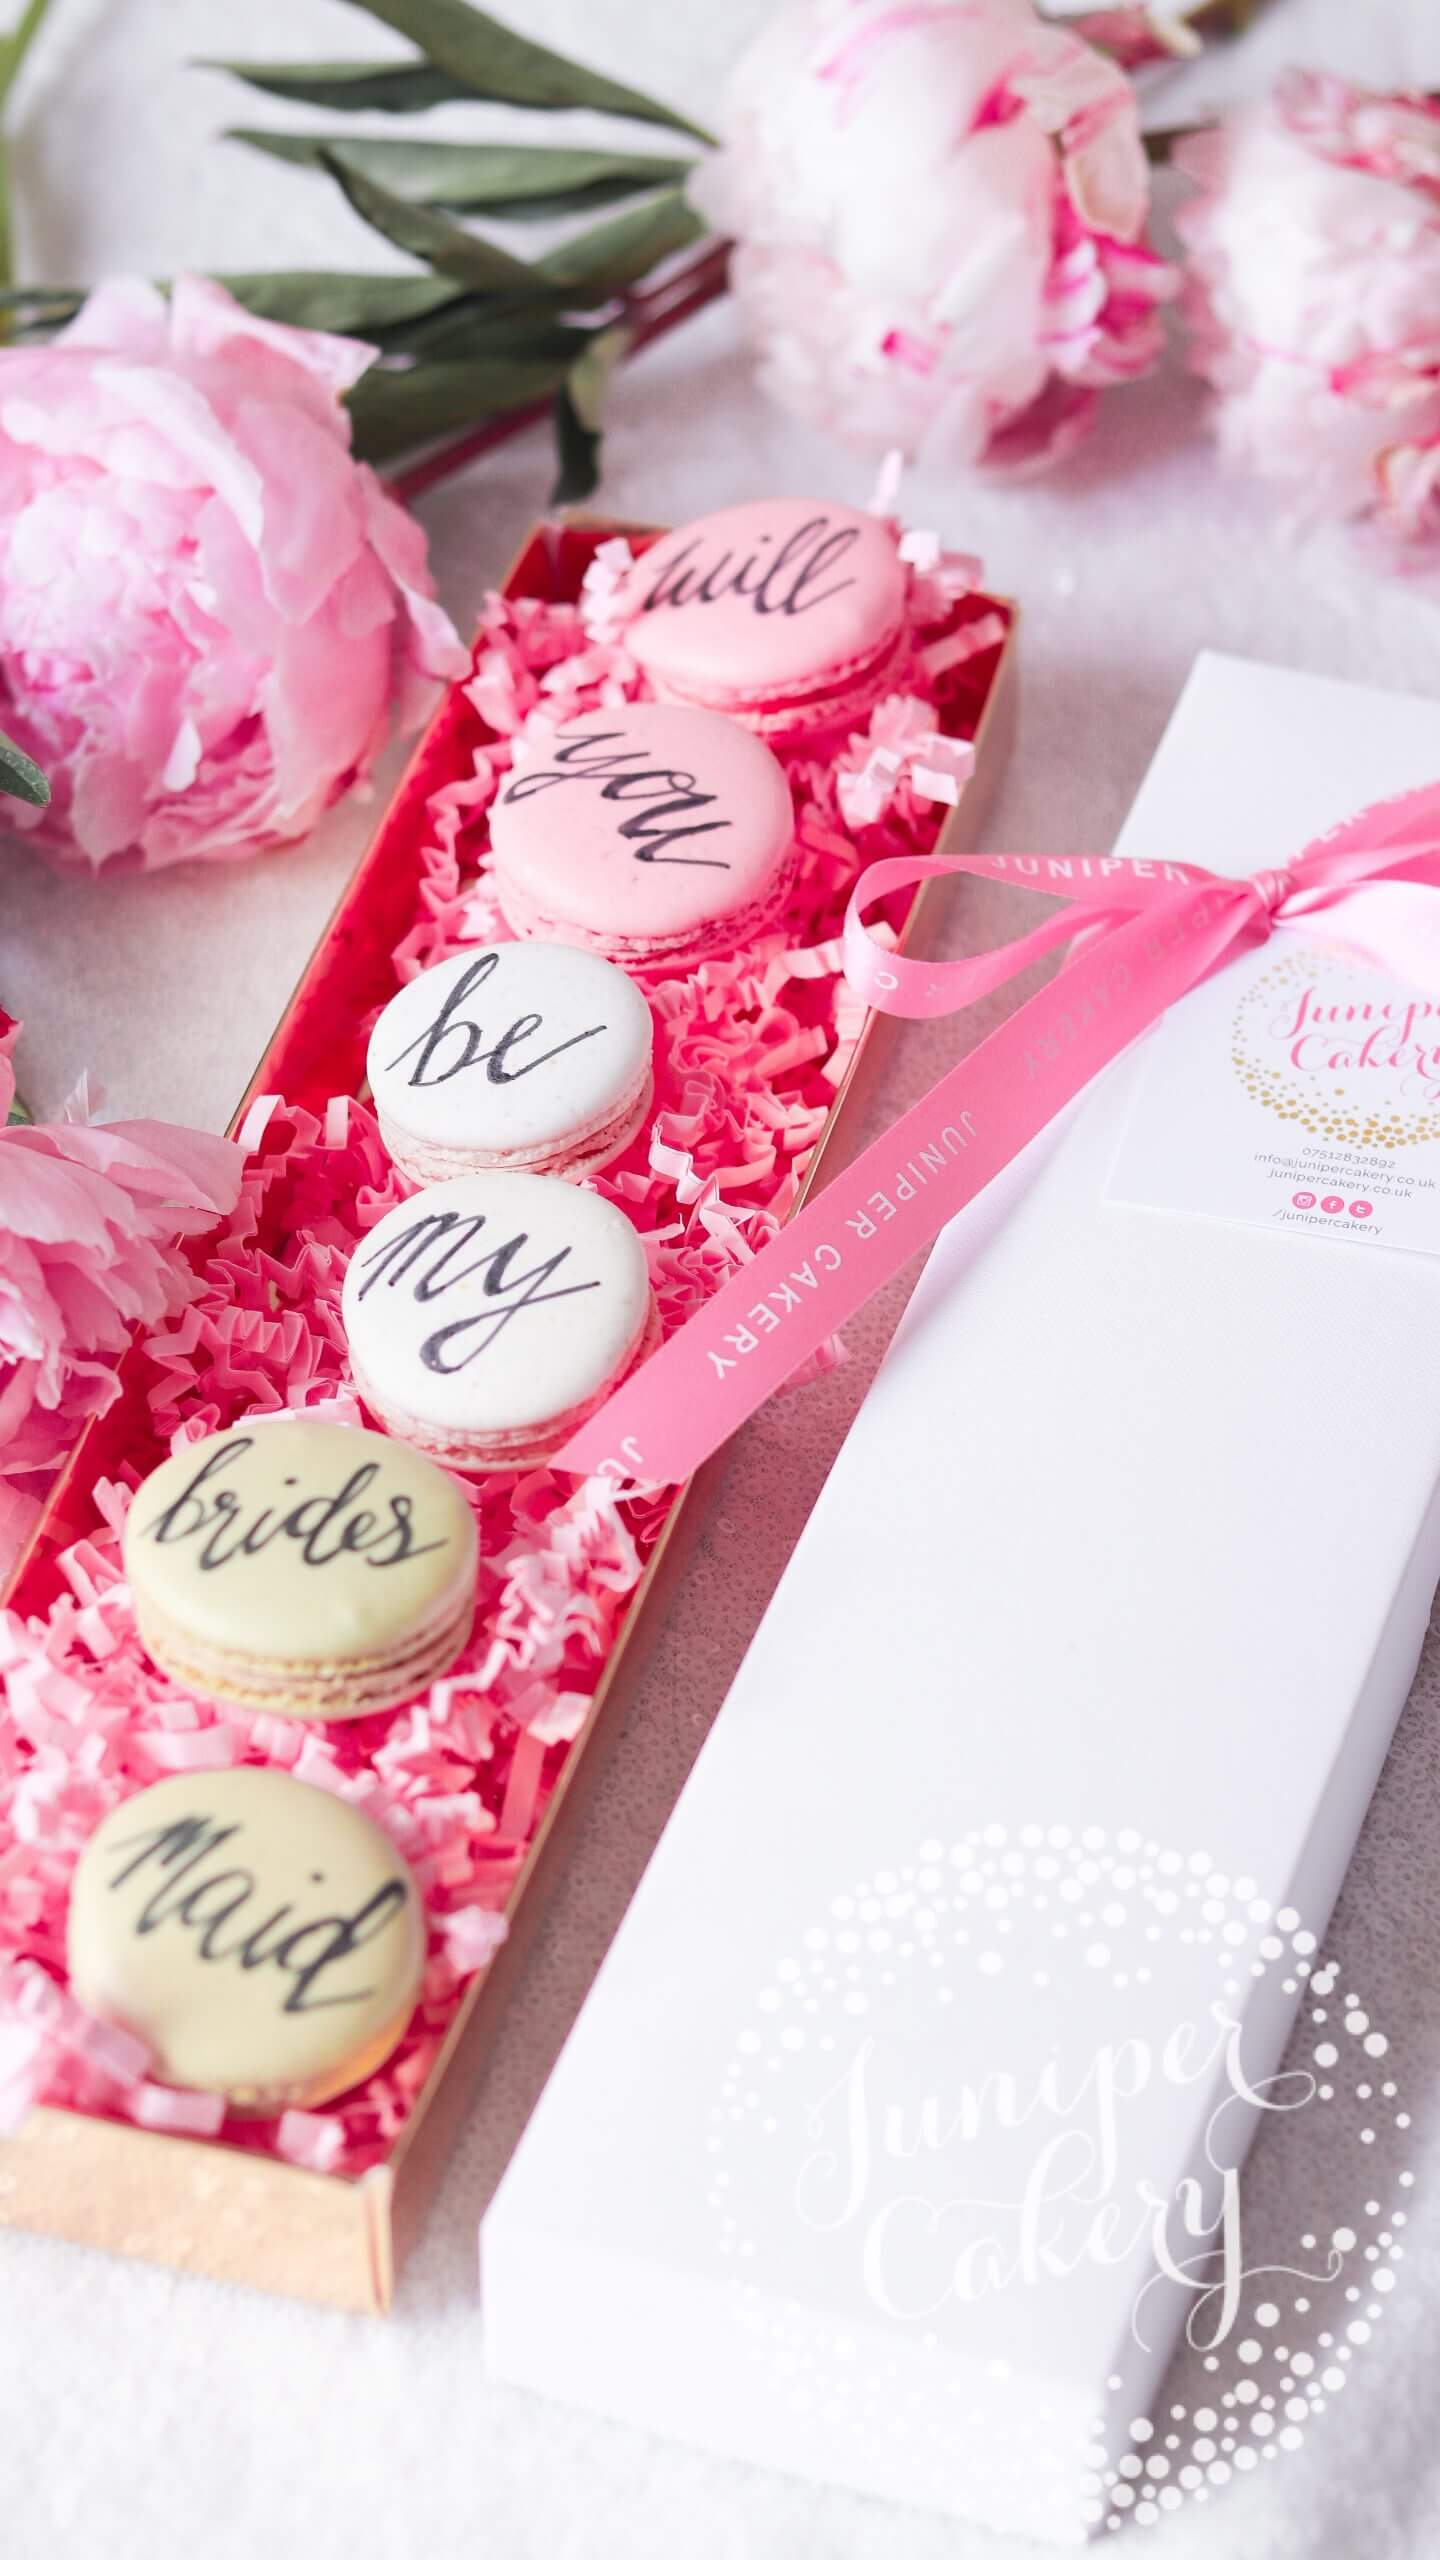 Bridesmaid Proposal Macarons via Juniper Cakery